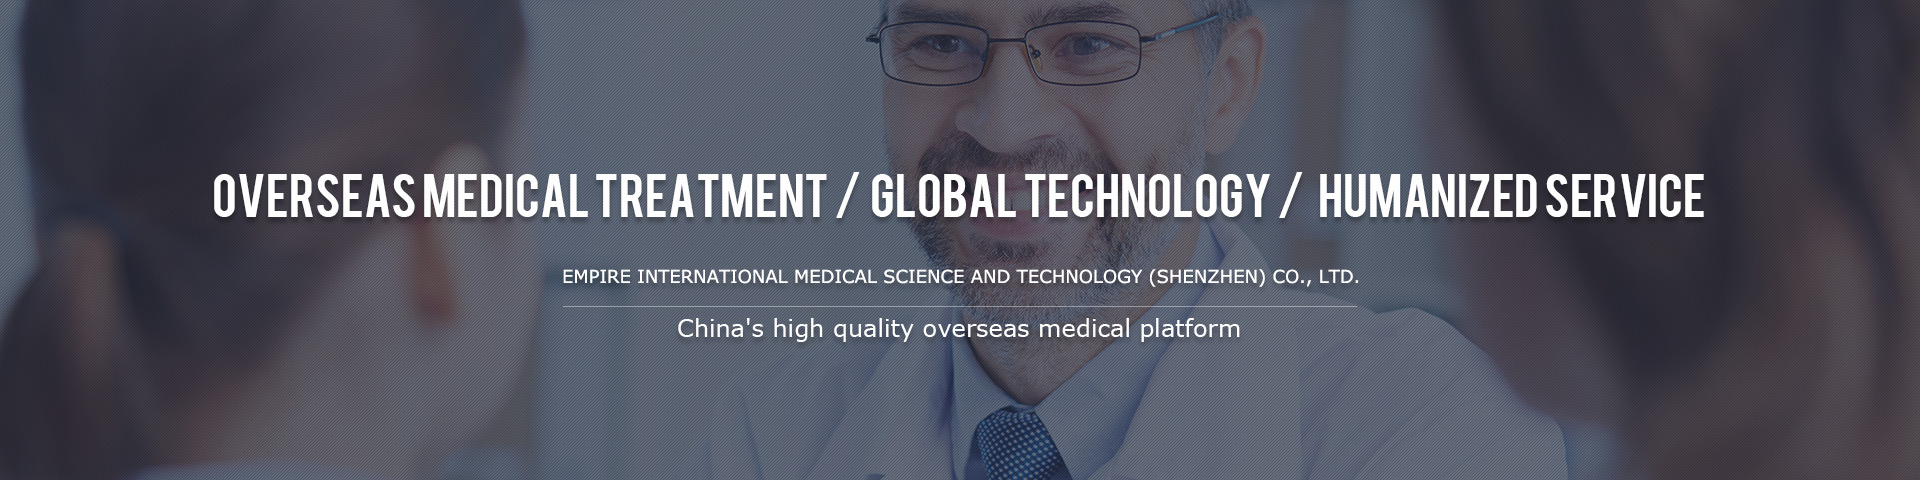 empire international medical science and technology (shenzhen) co., LTD.